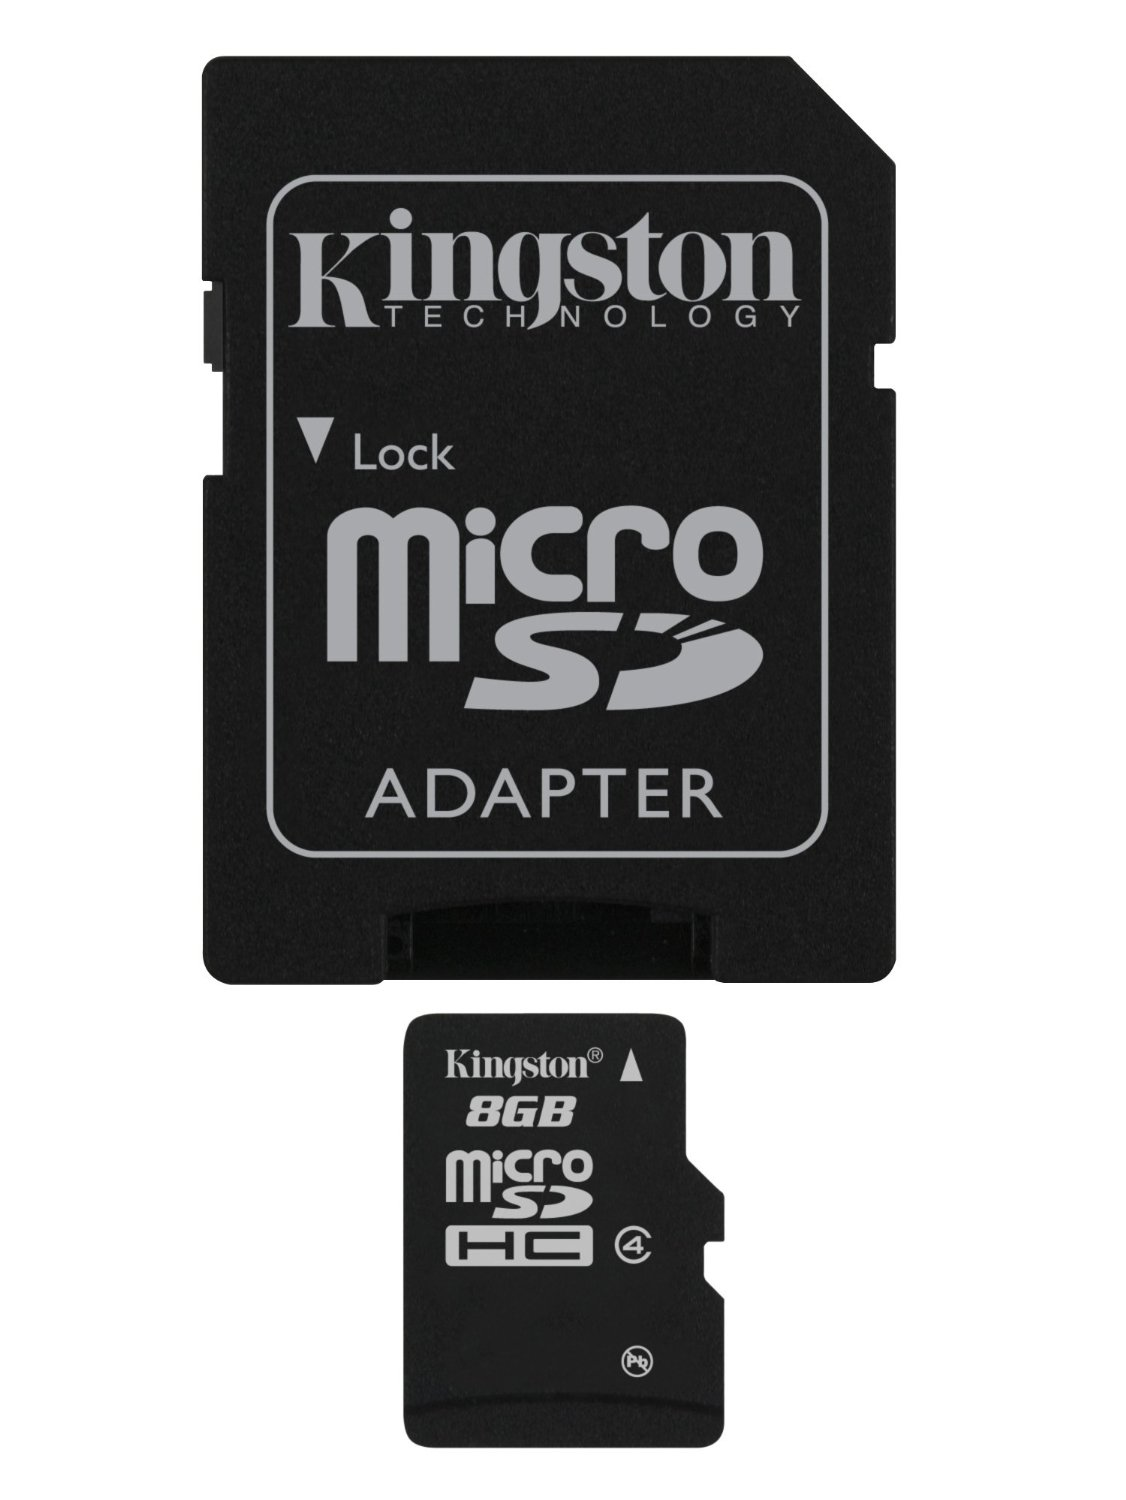 16GB Micro SDHC Kingston - class 4